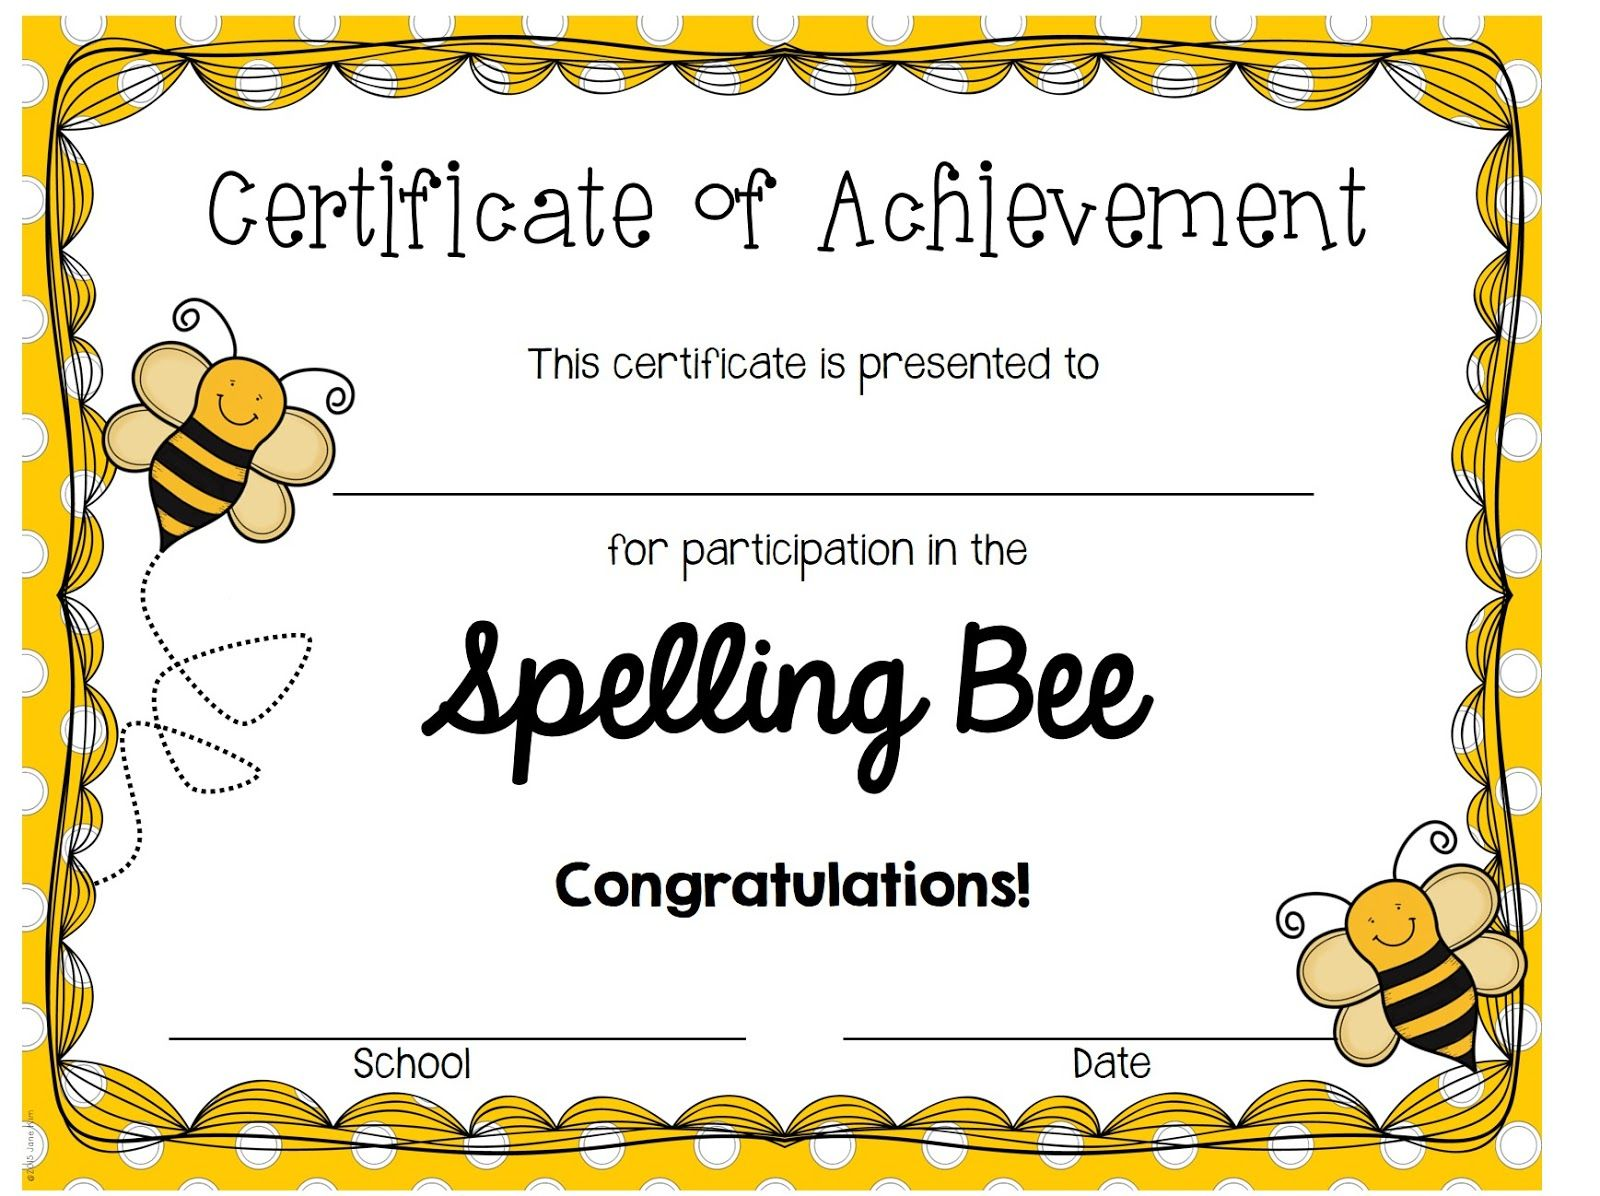 spelling bee certificates printable invitation templates spelling bee certificates printable invitation templates designsearch results for spelling bee certificates printable